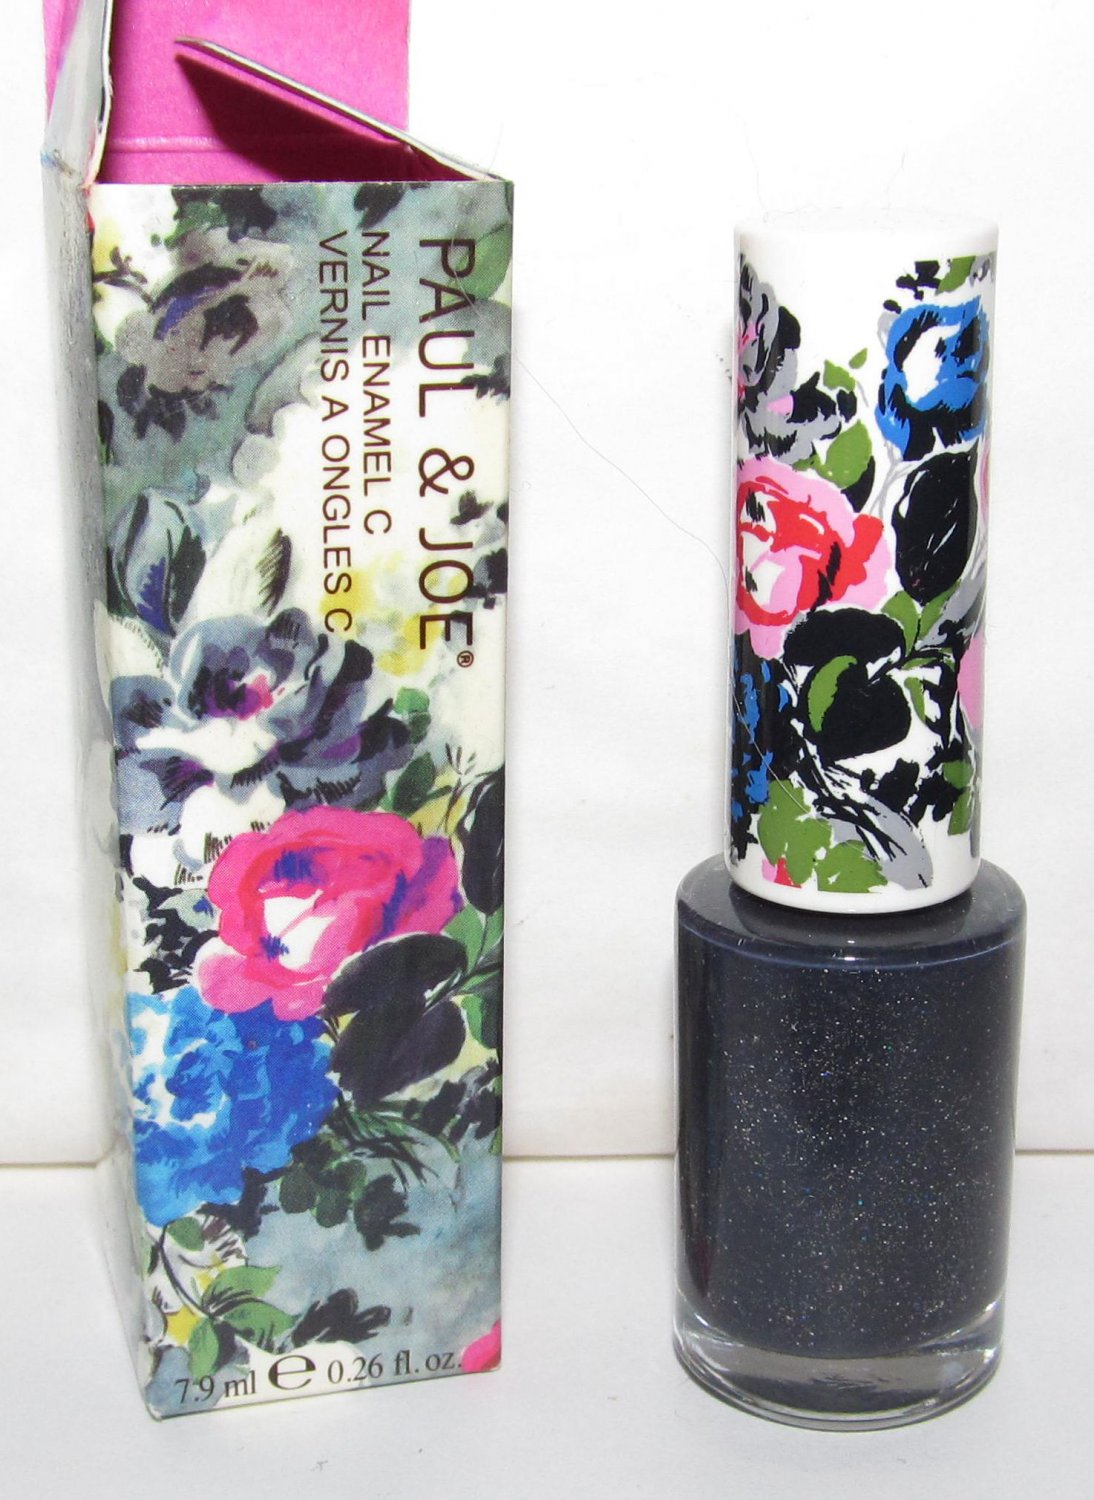 Paul & Joe Nail Polish - Orchestral - NEW in Box